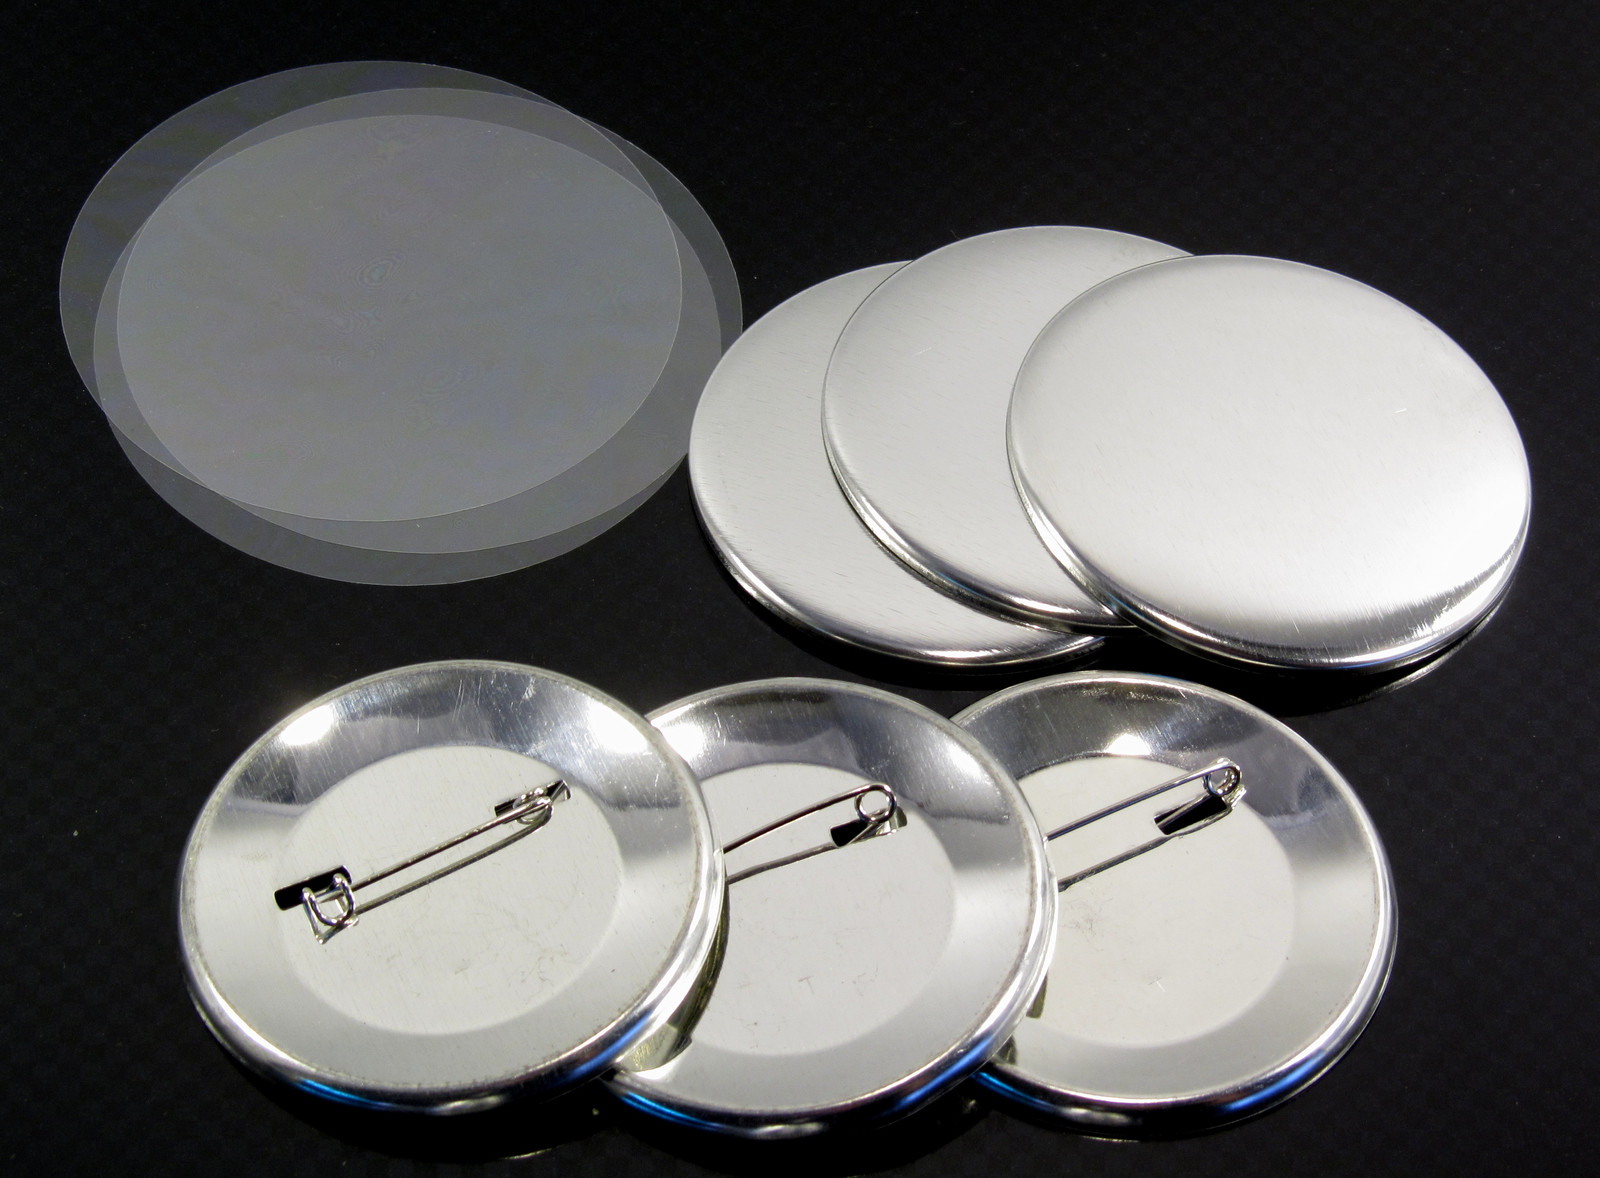 Tecre compatible badges, now available in Australia